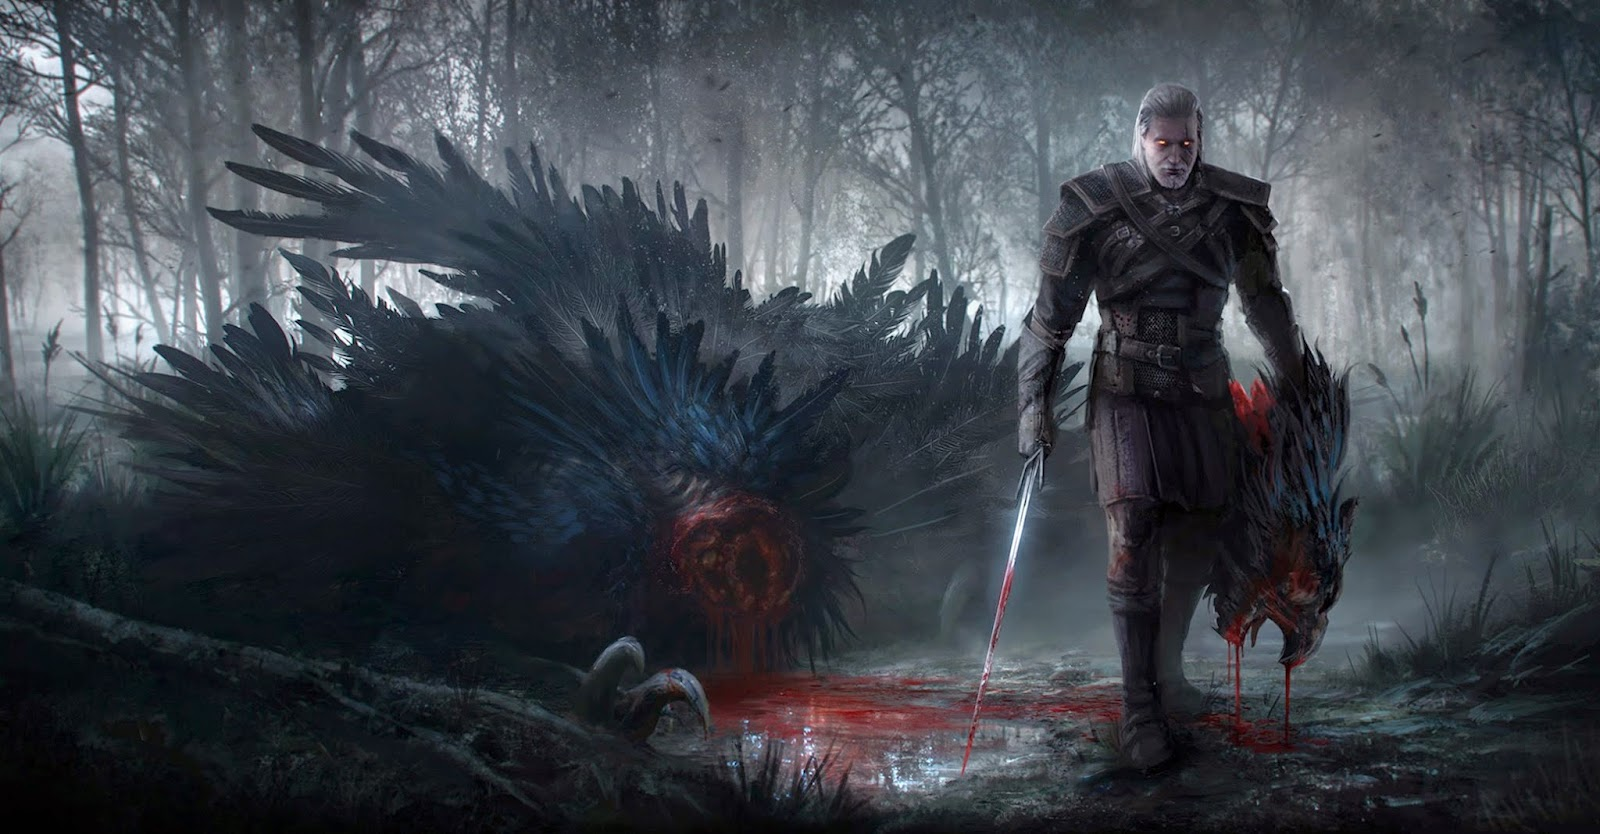 The Witcher 3 Wild Hunt wallpapers GameWallpapers  - the witcher 3 wild hunt game wallpapers